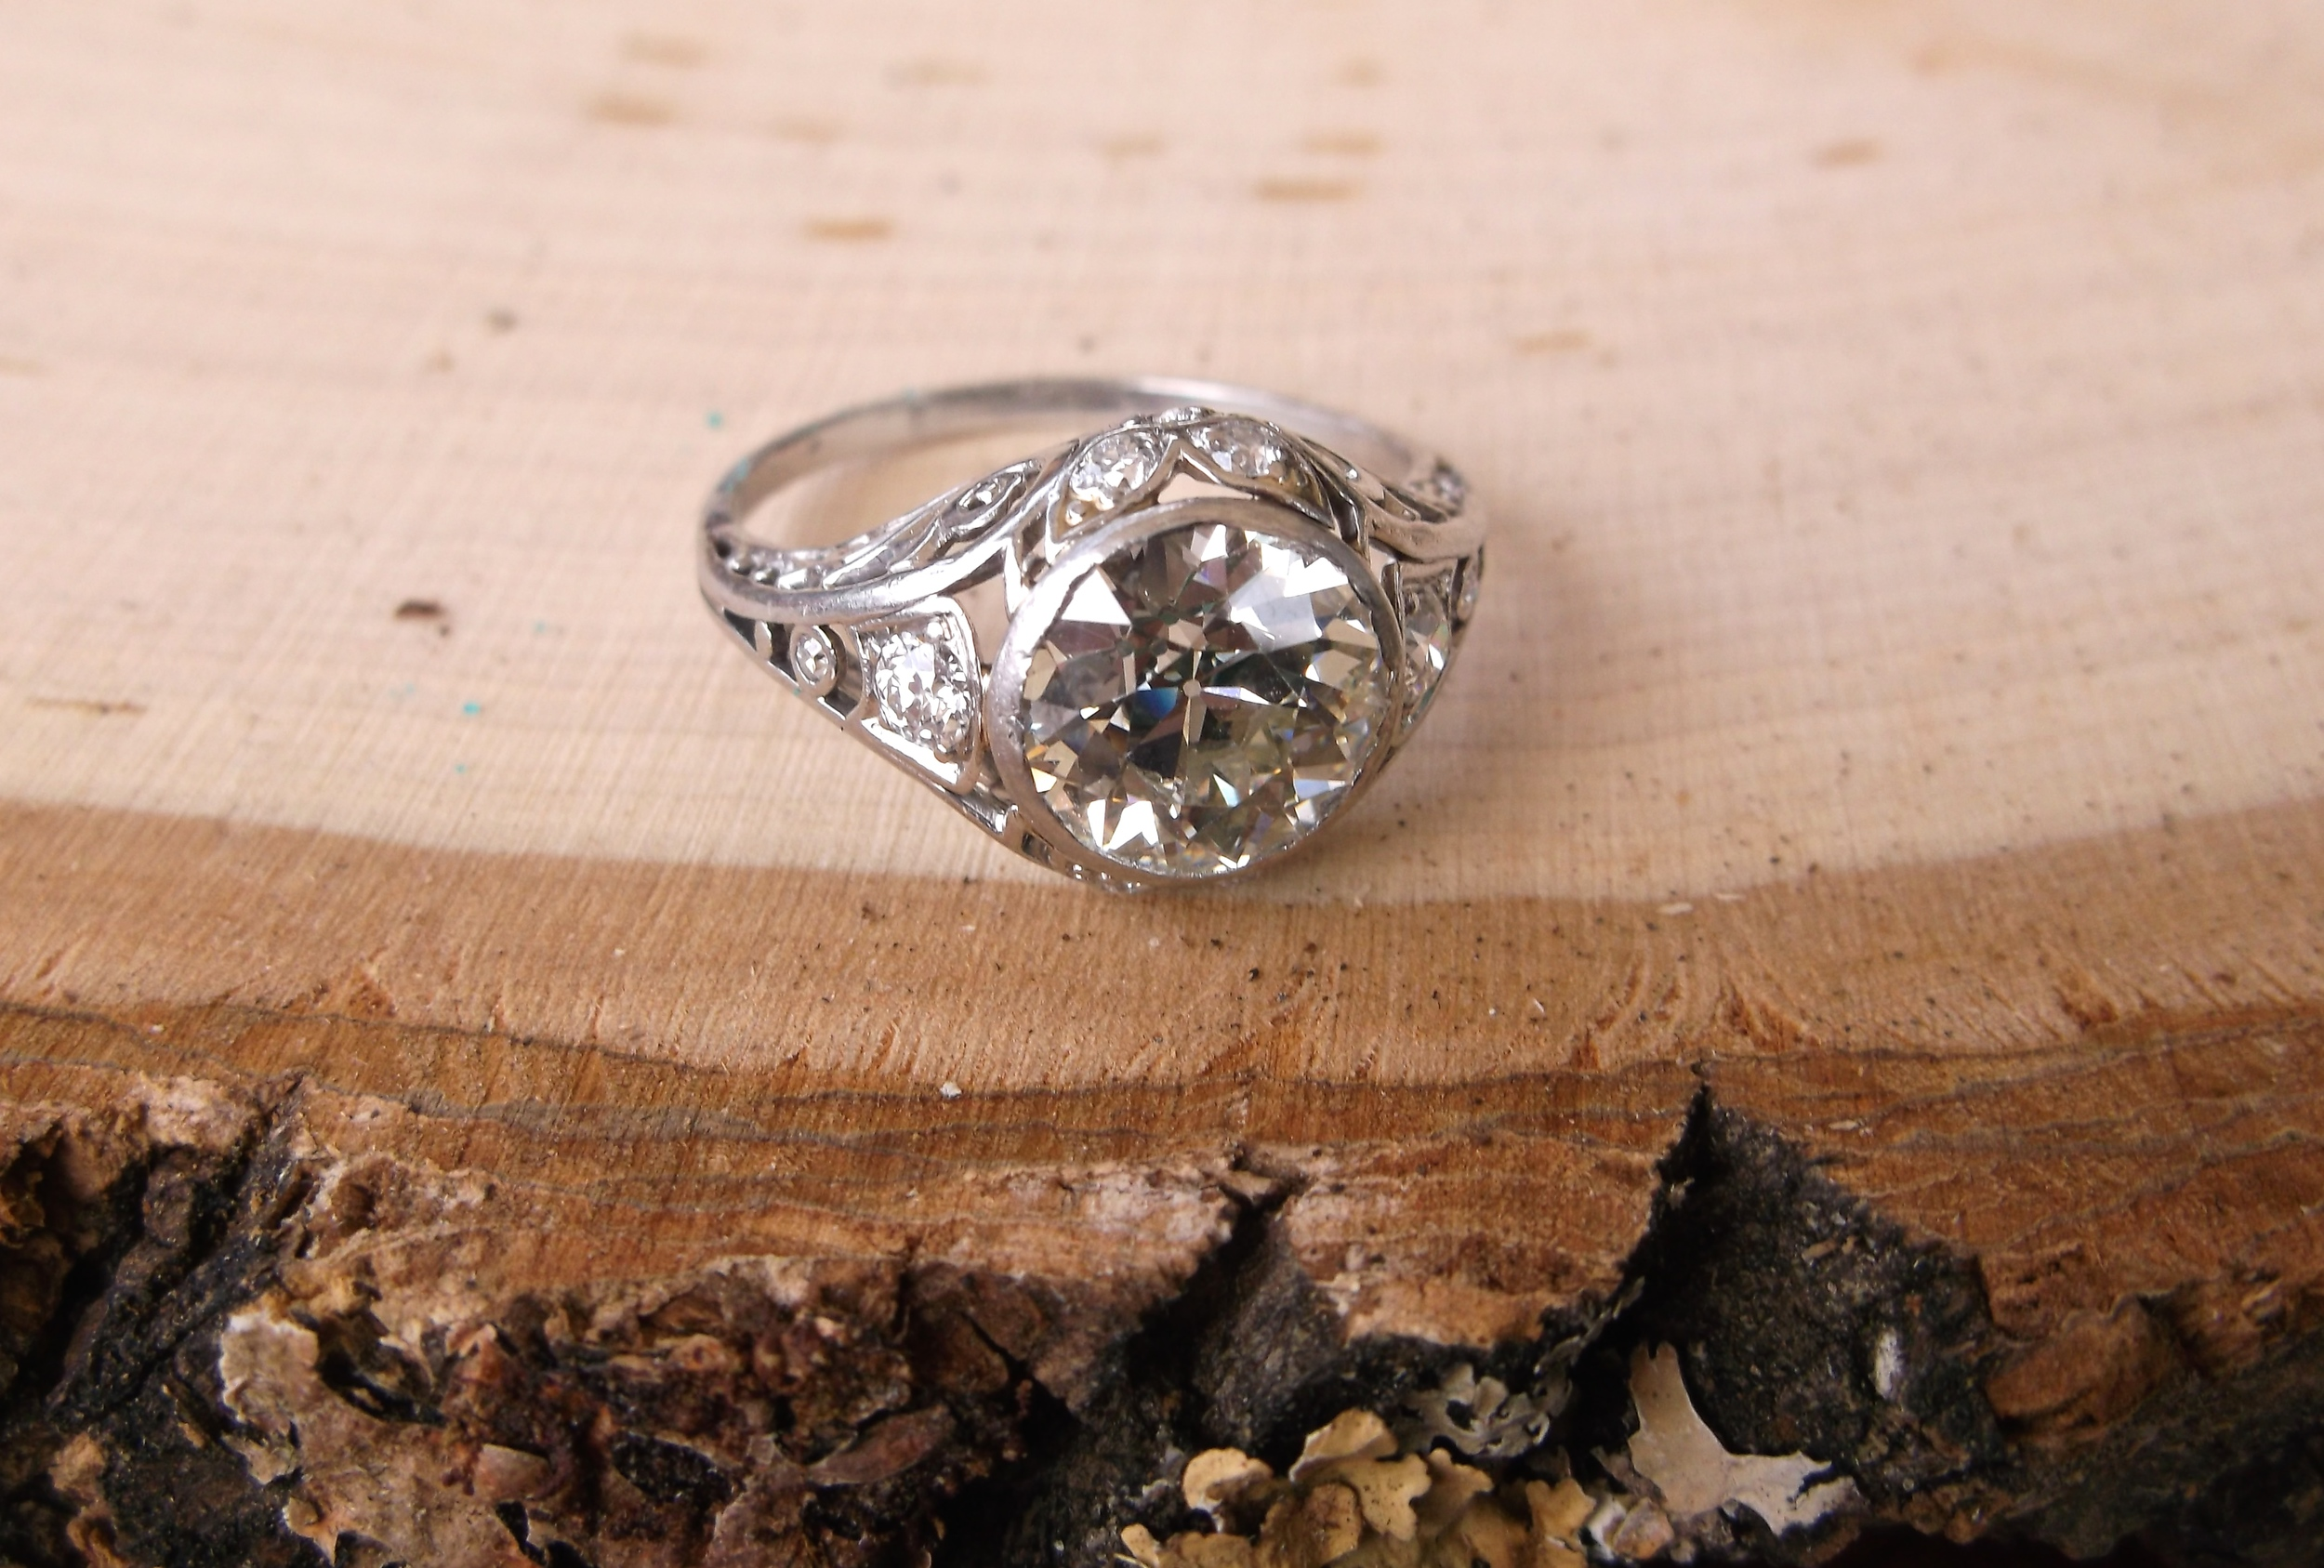 SOLD - Gorgeous Art Deco 2.36 carat Old European cut diamond set in a beautiful diamond and platinum mounting.